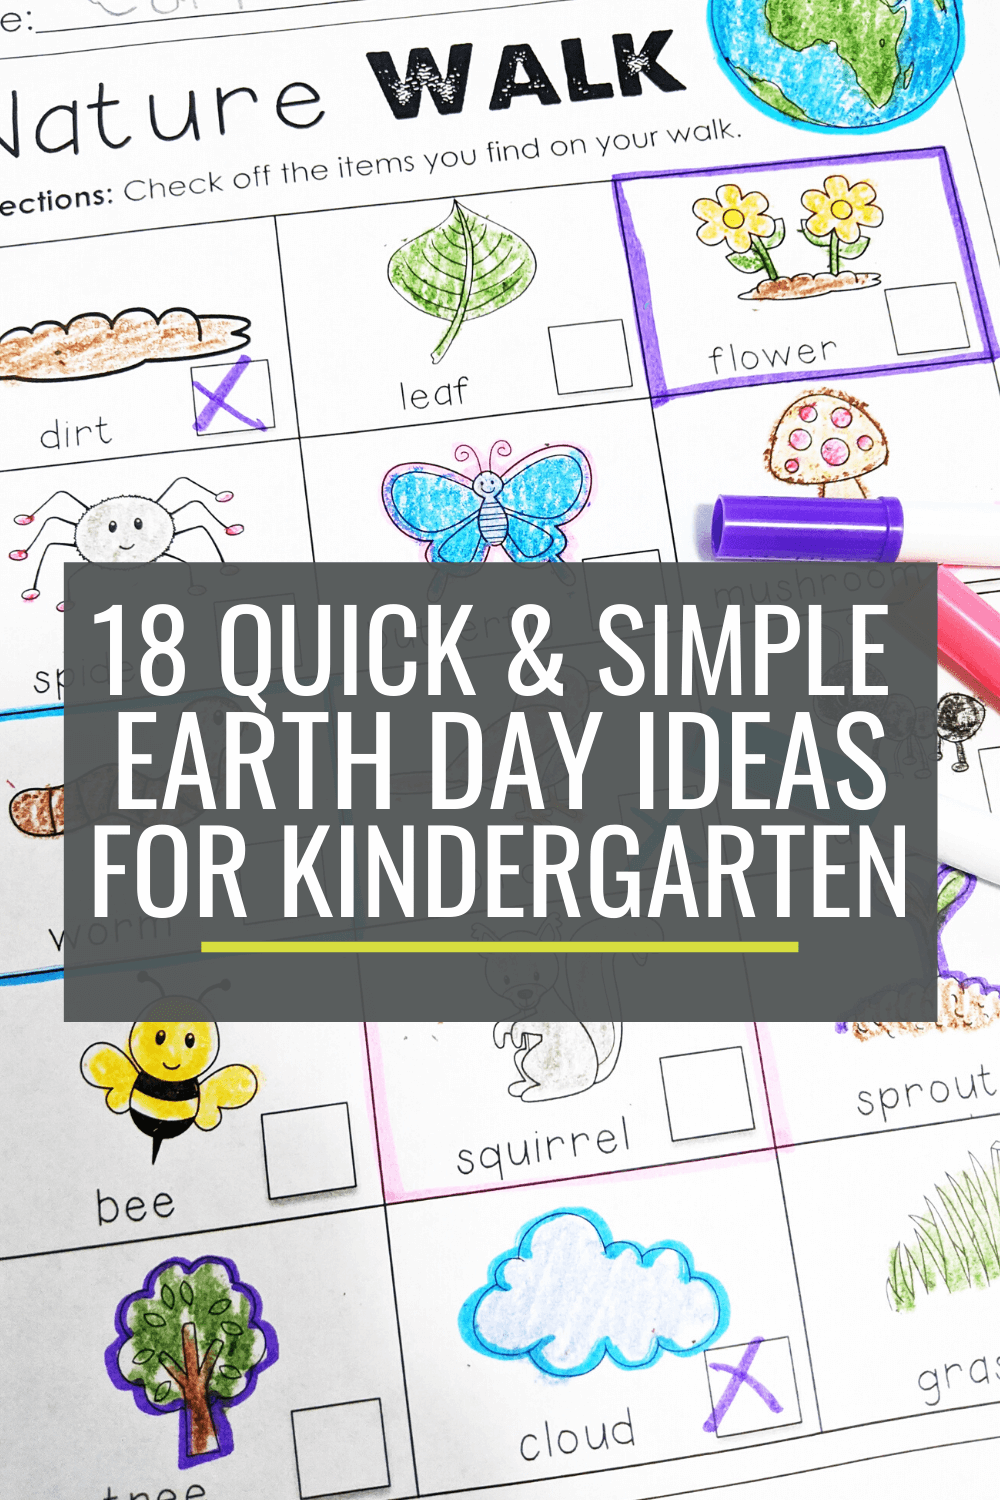 18 Quick and Simple Earth Day Ideas for Kindergarten